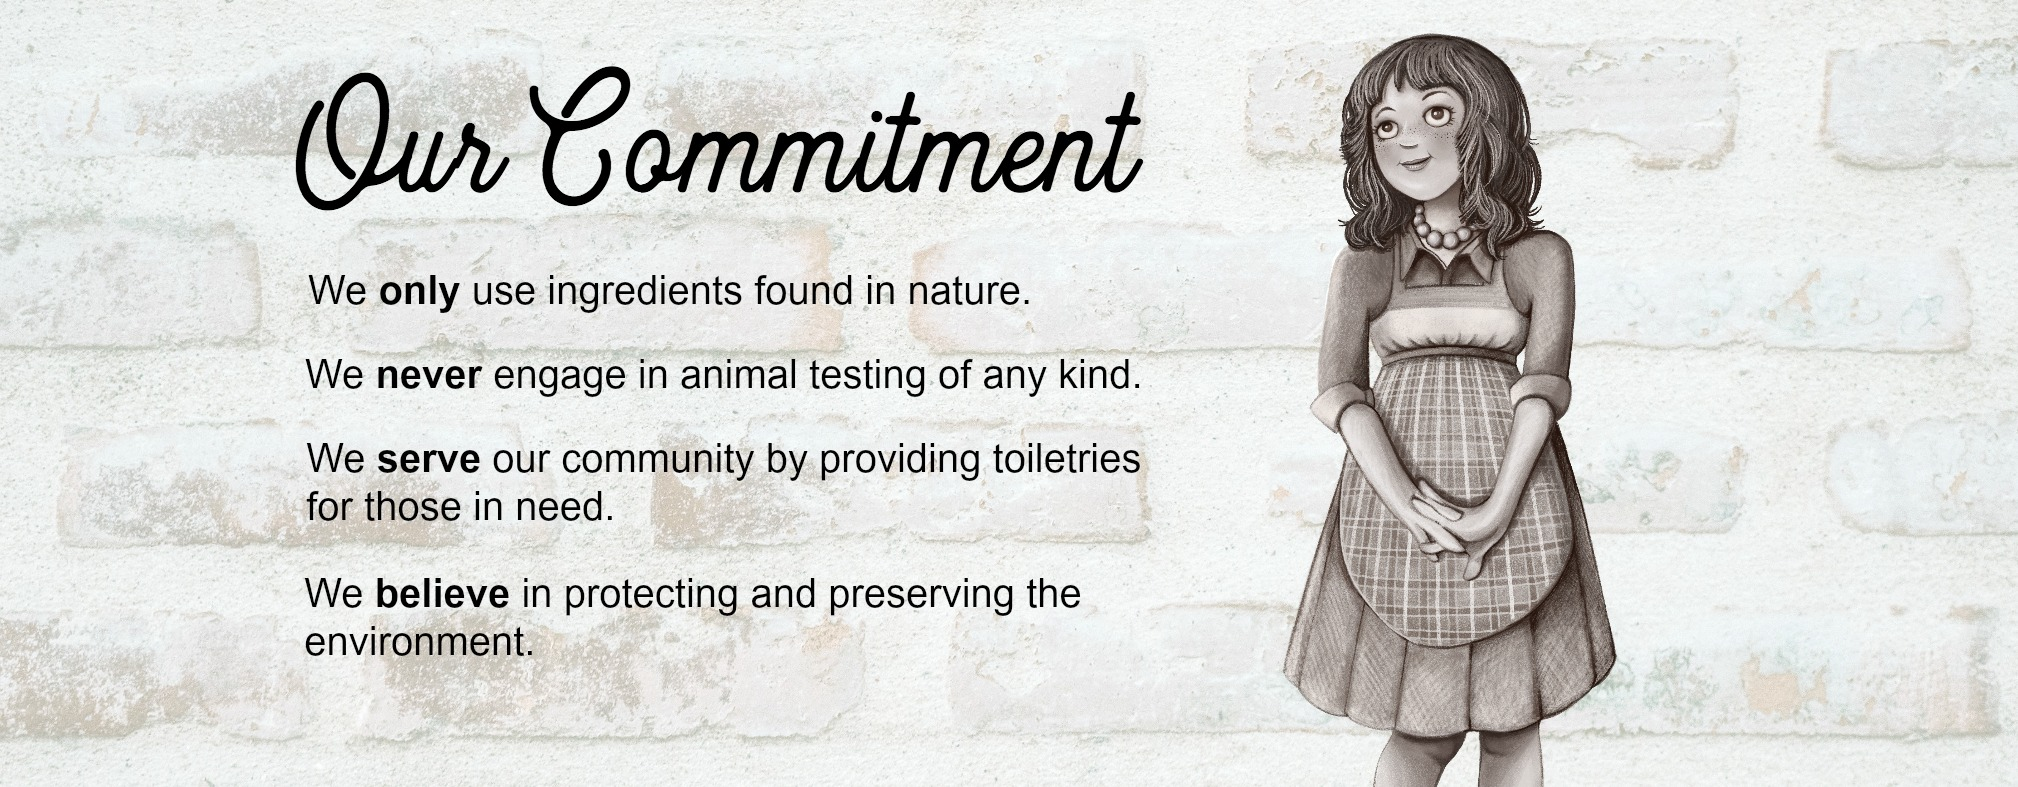 Our Commitment New.jpg